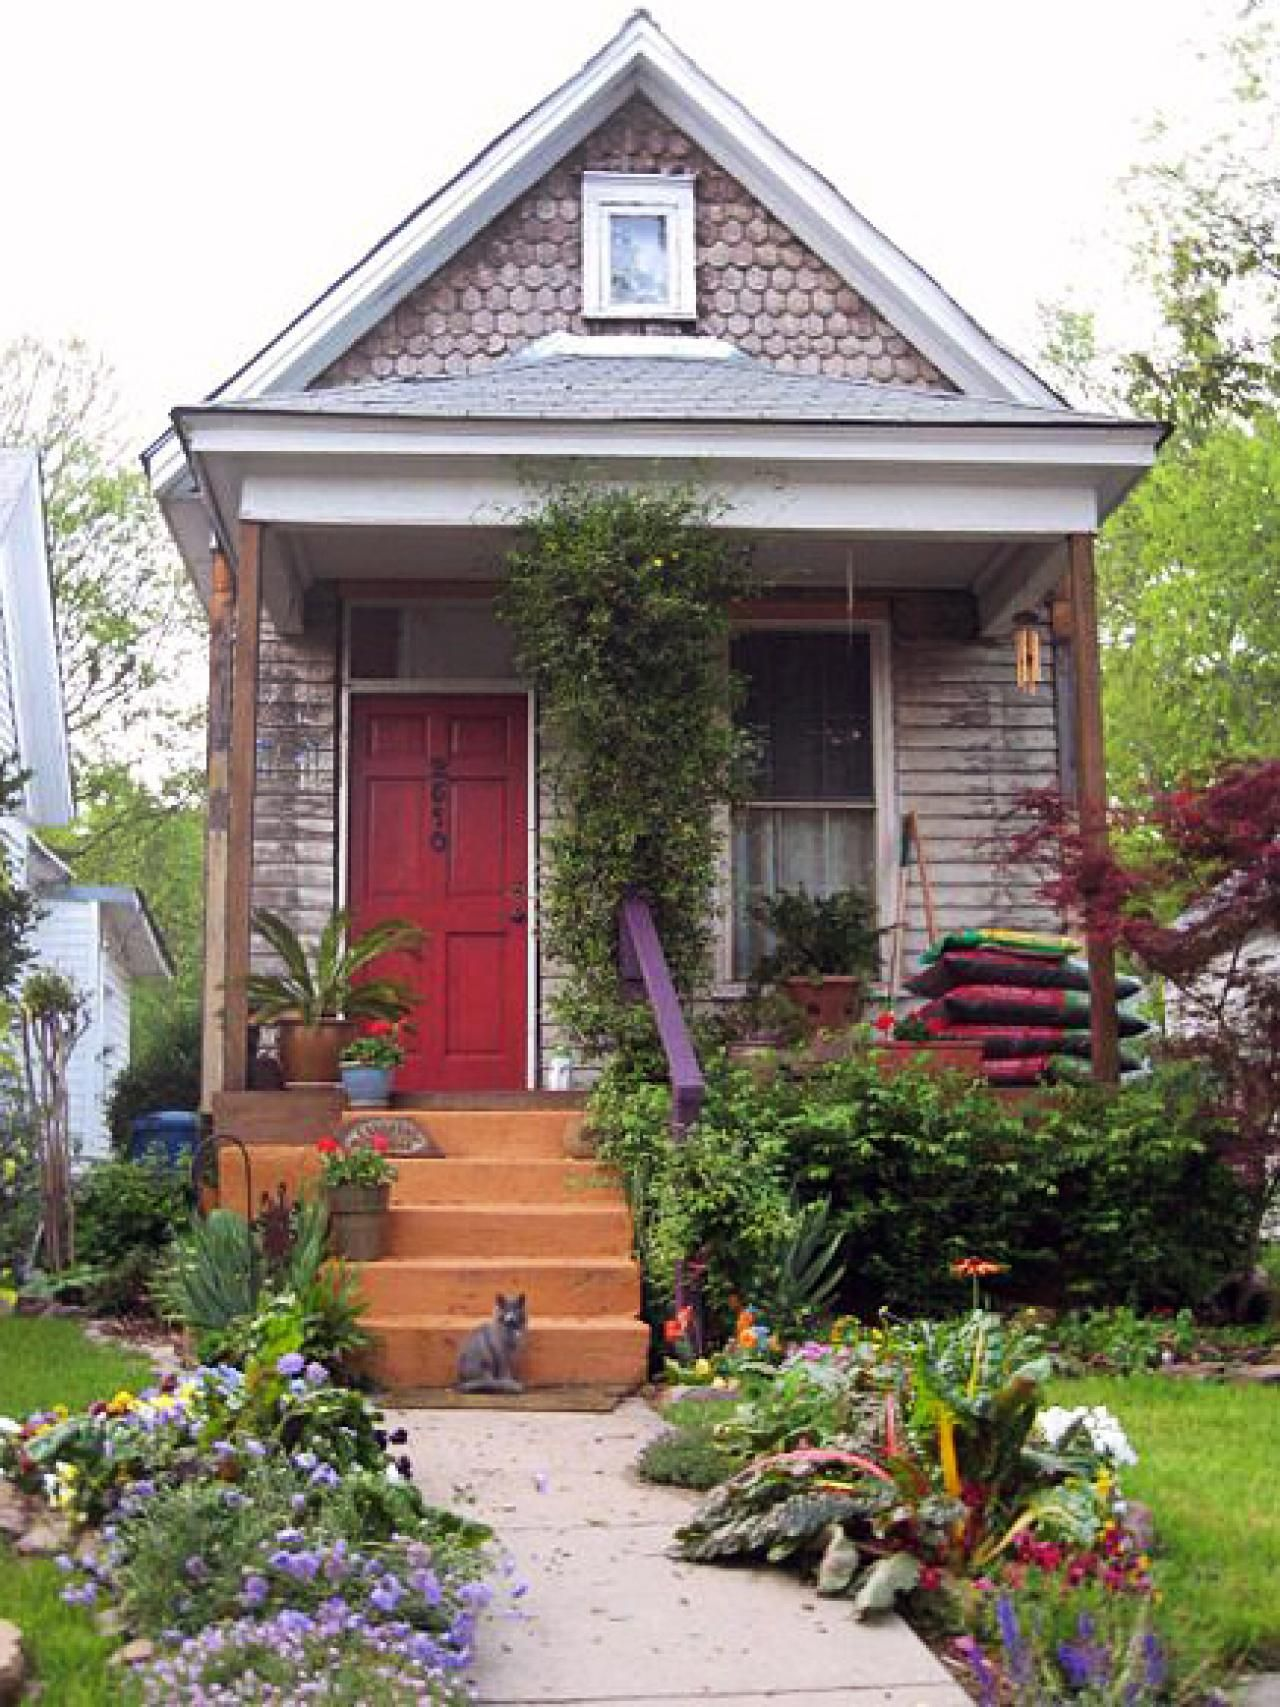 New Orleans Style Homes Shotgun Houses Were The Most Por Of Home In South From End Civil War Until 1920s